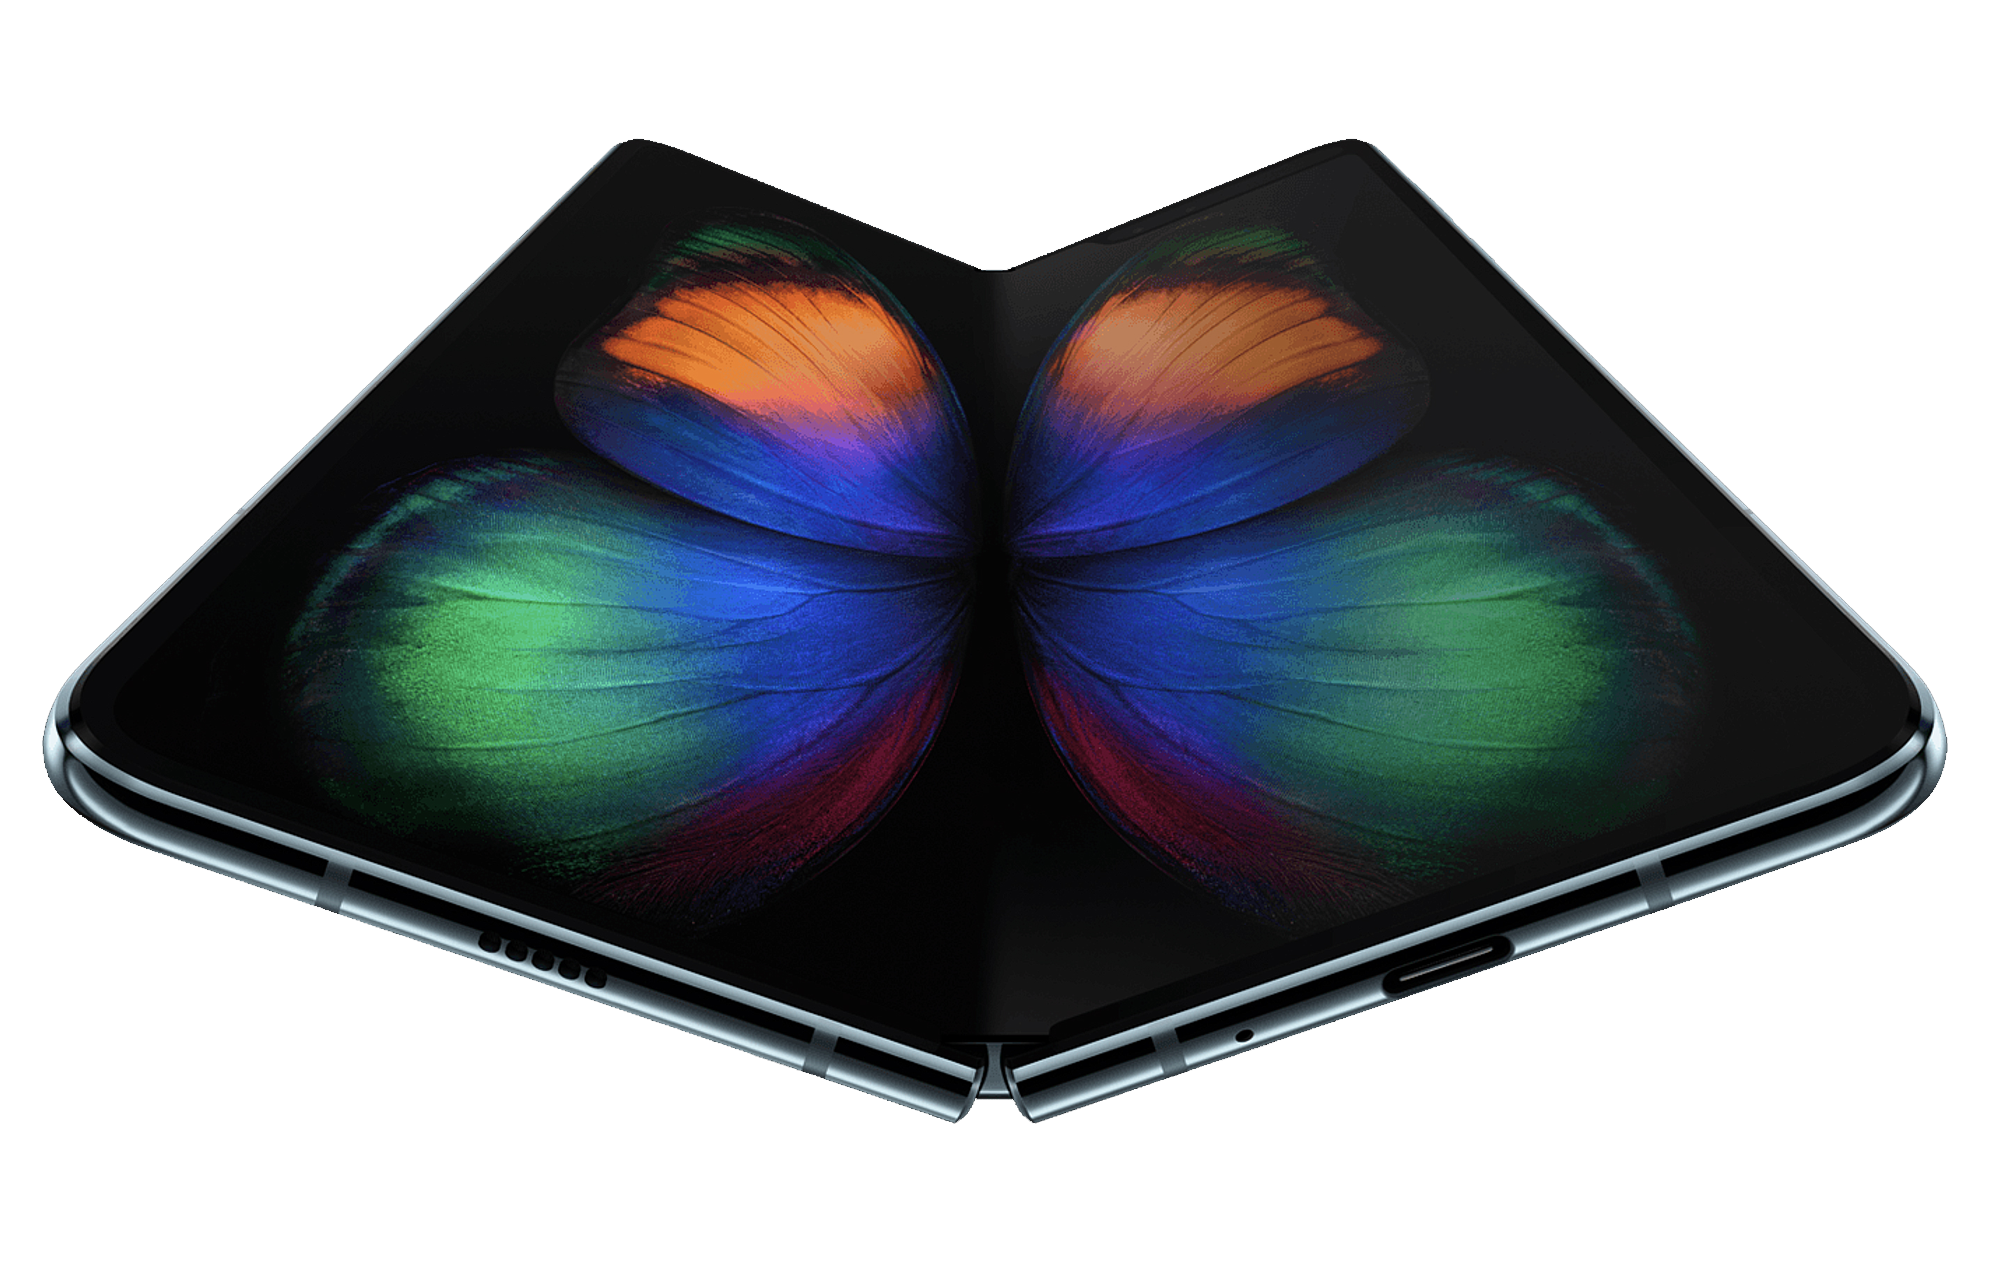 The Samsung Galaxy Fold will arrive in April.